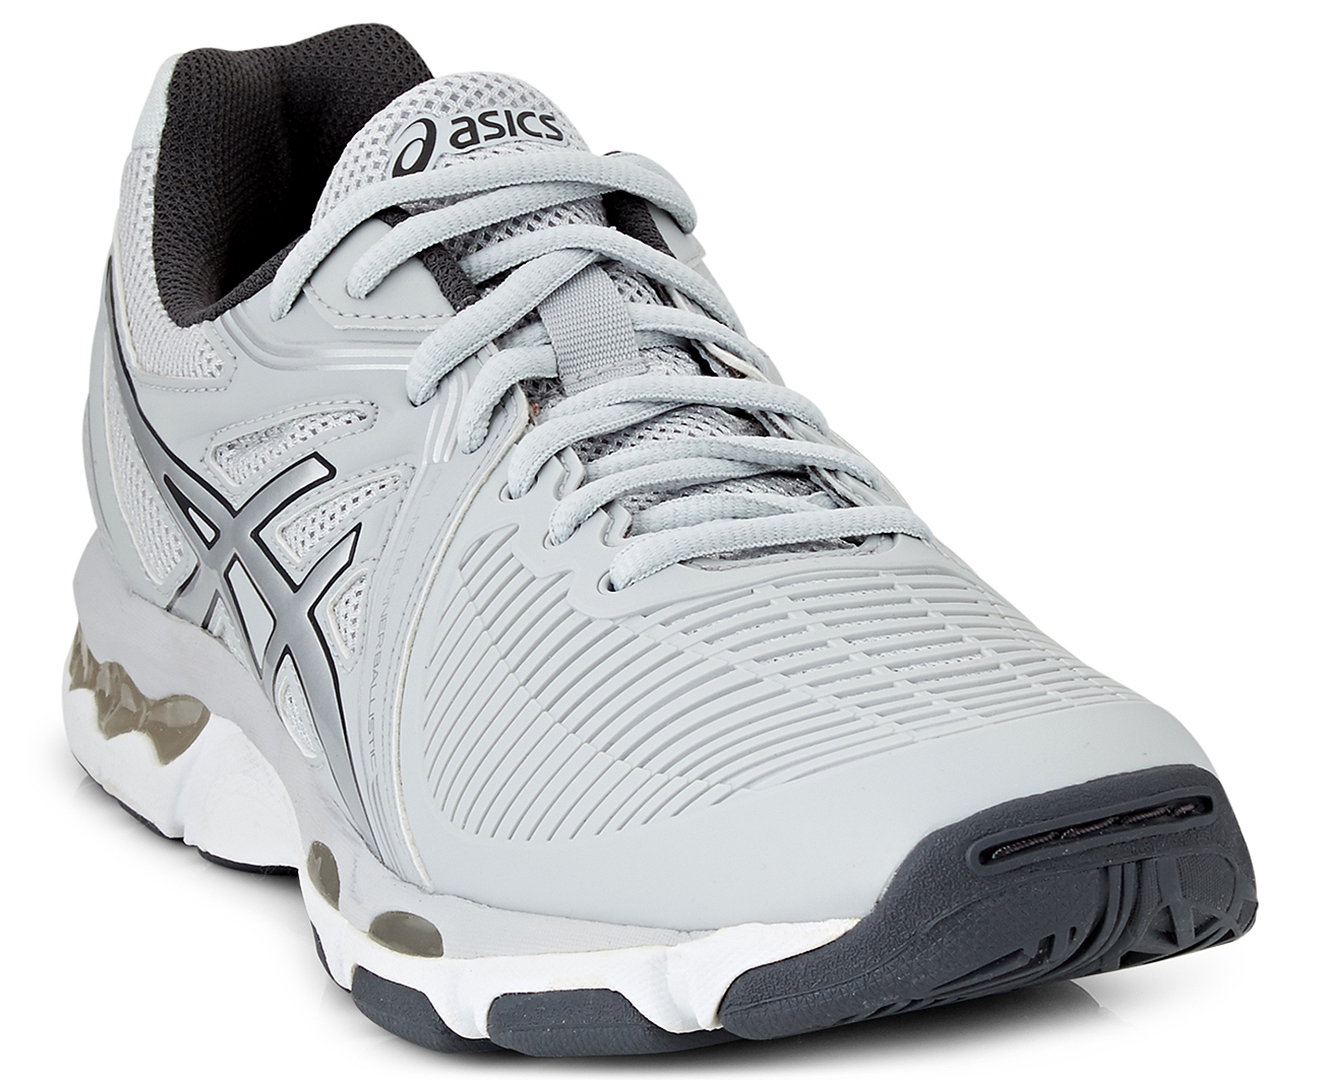 a great variety of models amazing price volume large Details about ASICS Women's GEL-Netburner Ballistic Shoe - Glacier  Grey/Silver/Dark Grey